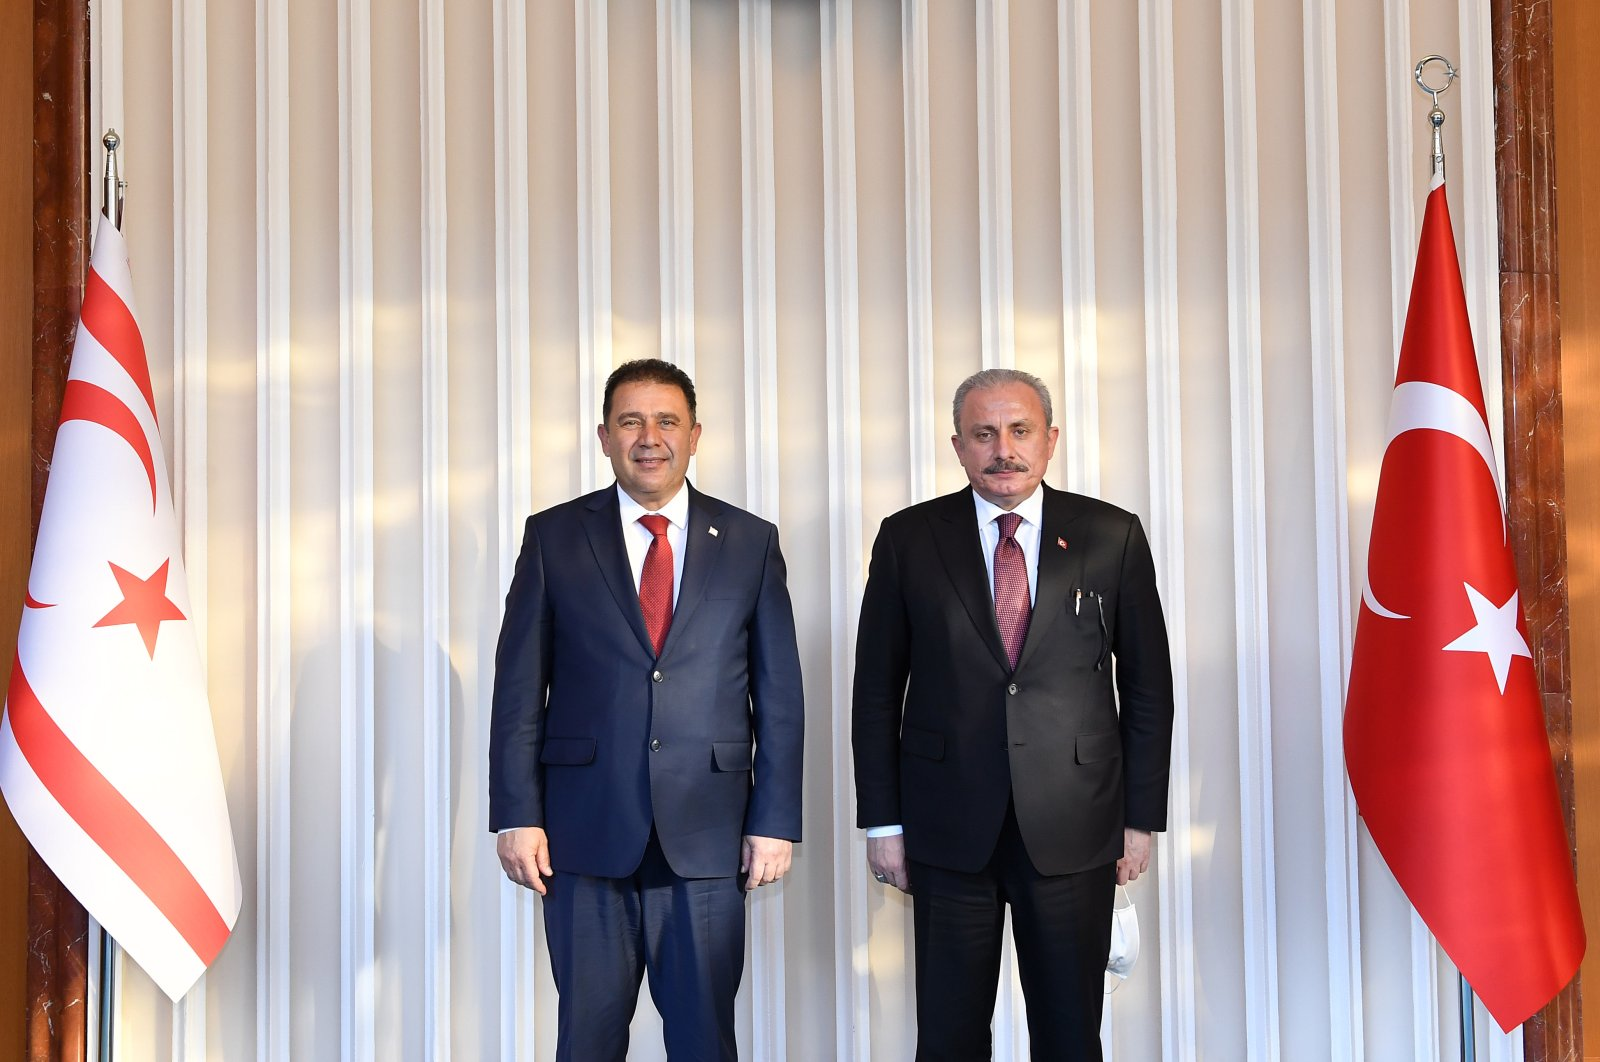 Turkish Republic of Northern Cyprus (TRNC) Prime Minister Ersan Saner (L) and Turkey's Parliament Speaker Mustafa Şentop pose for a photo before a meeting in the capital Ankara, Turkey, March 3, 2021. (AA Photo)